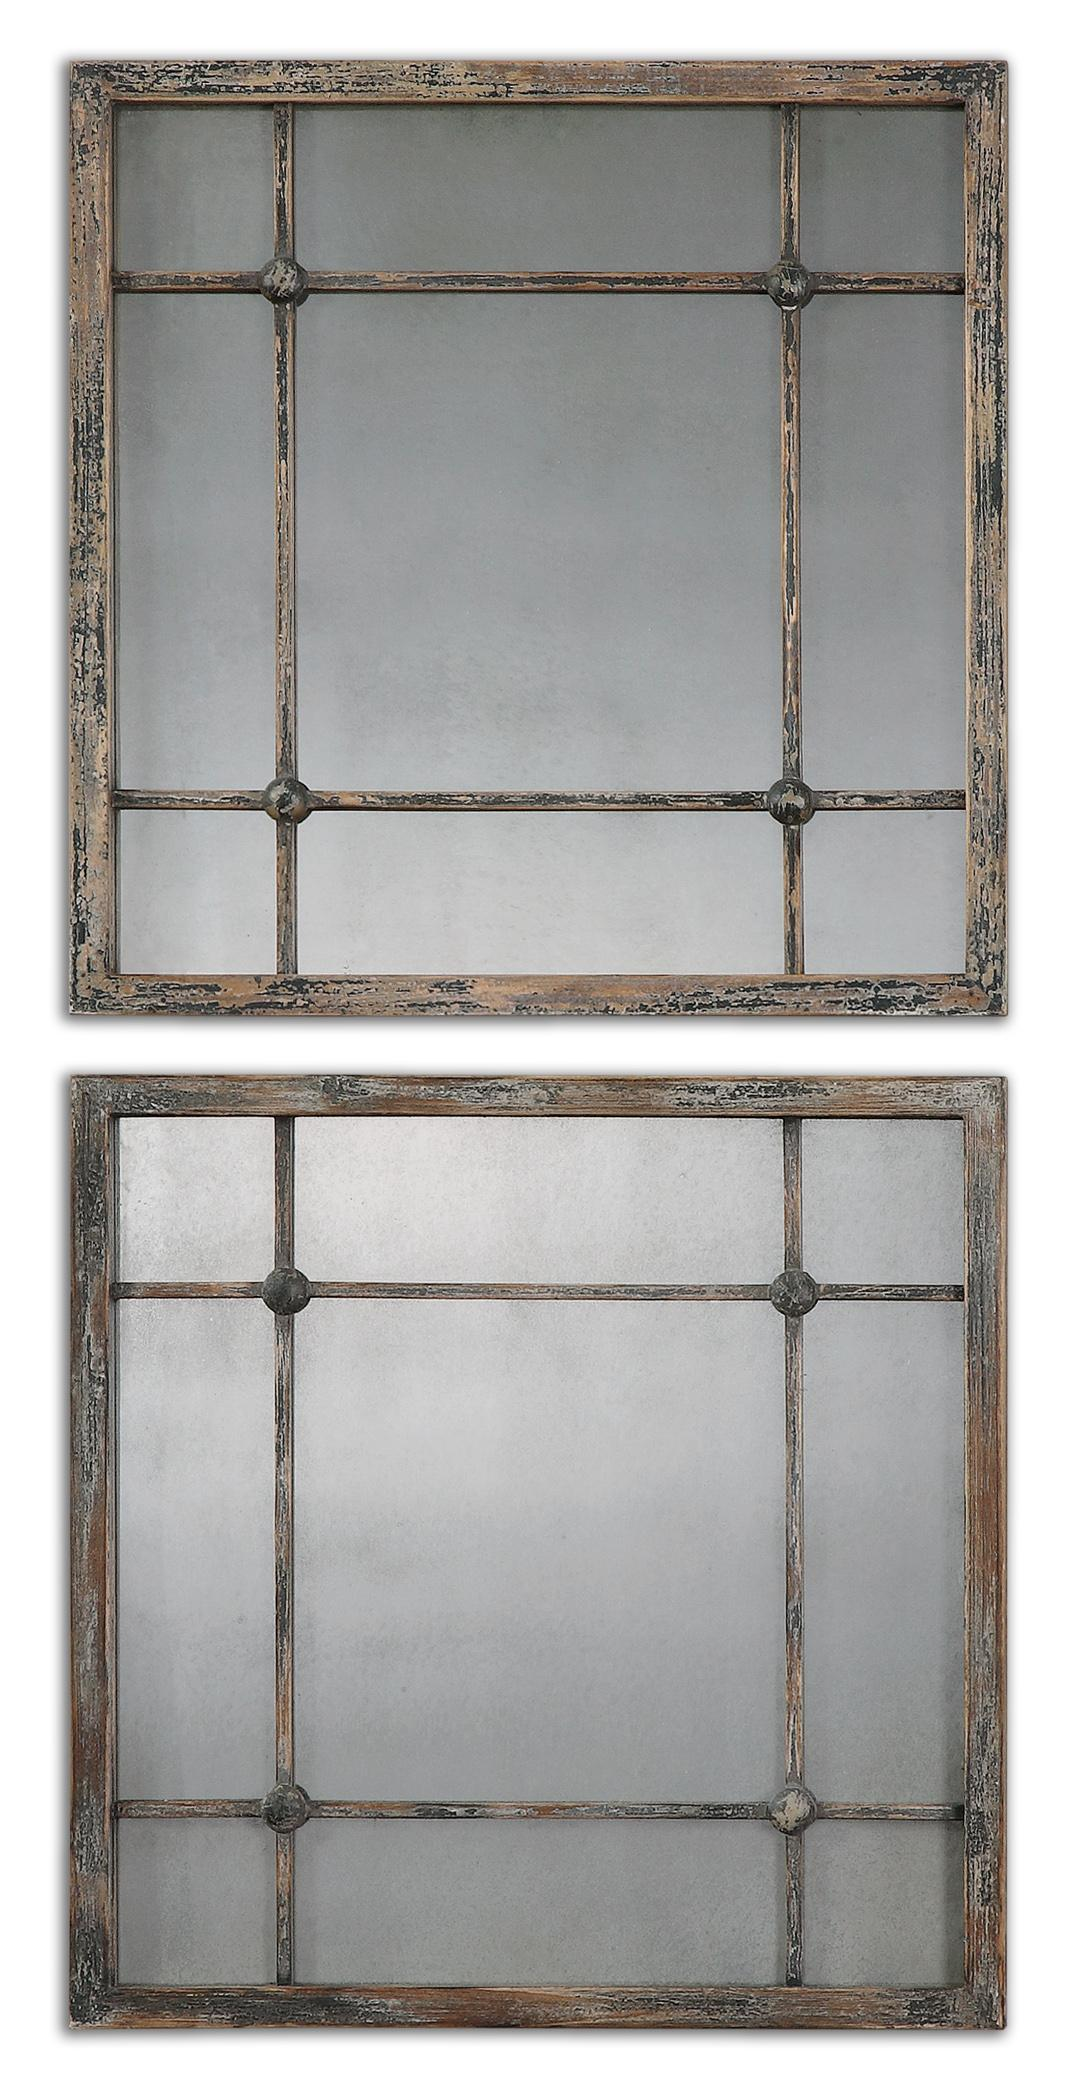 Uttermost Mirrors Saragano Square Mirrors Set of 2 - Item Number: 13845